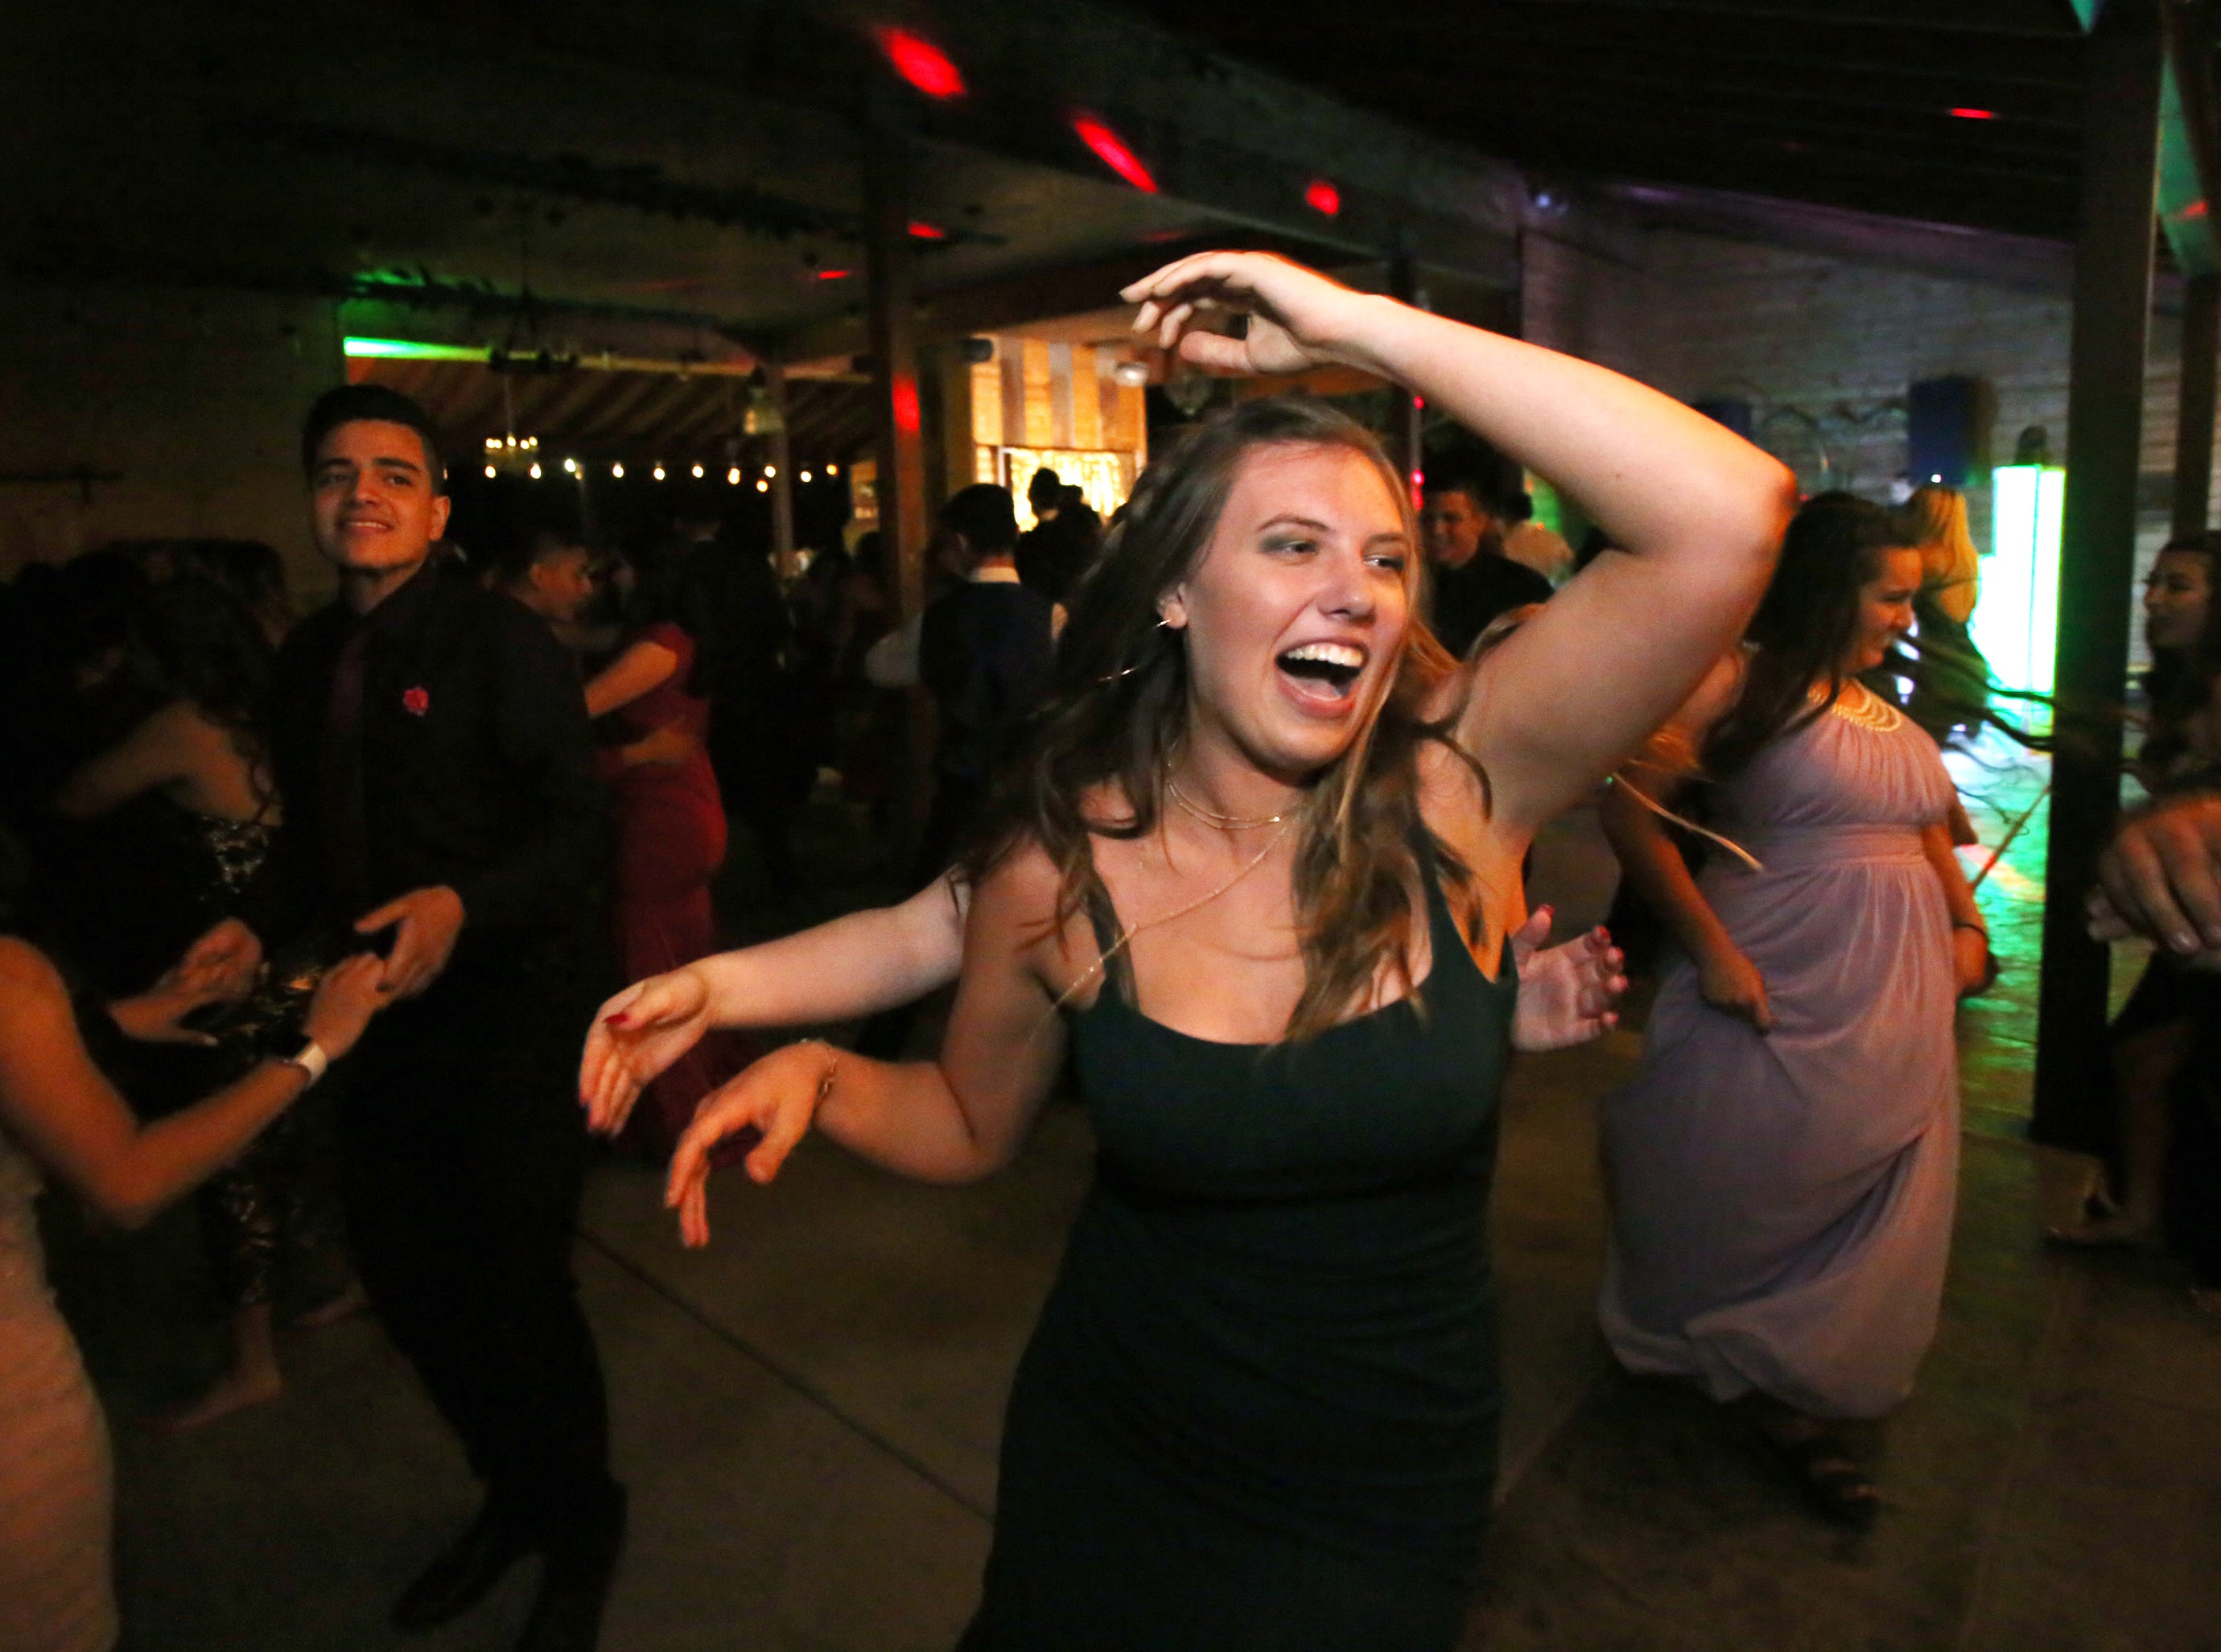 Morgan Weldon has fun at the Exeter Union High School prom Saturday, May 4, 2019 in Woodlake, Calif.